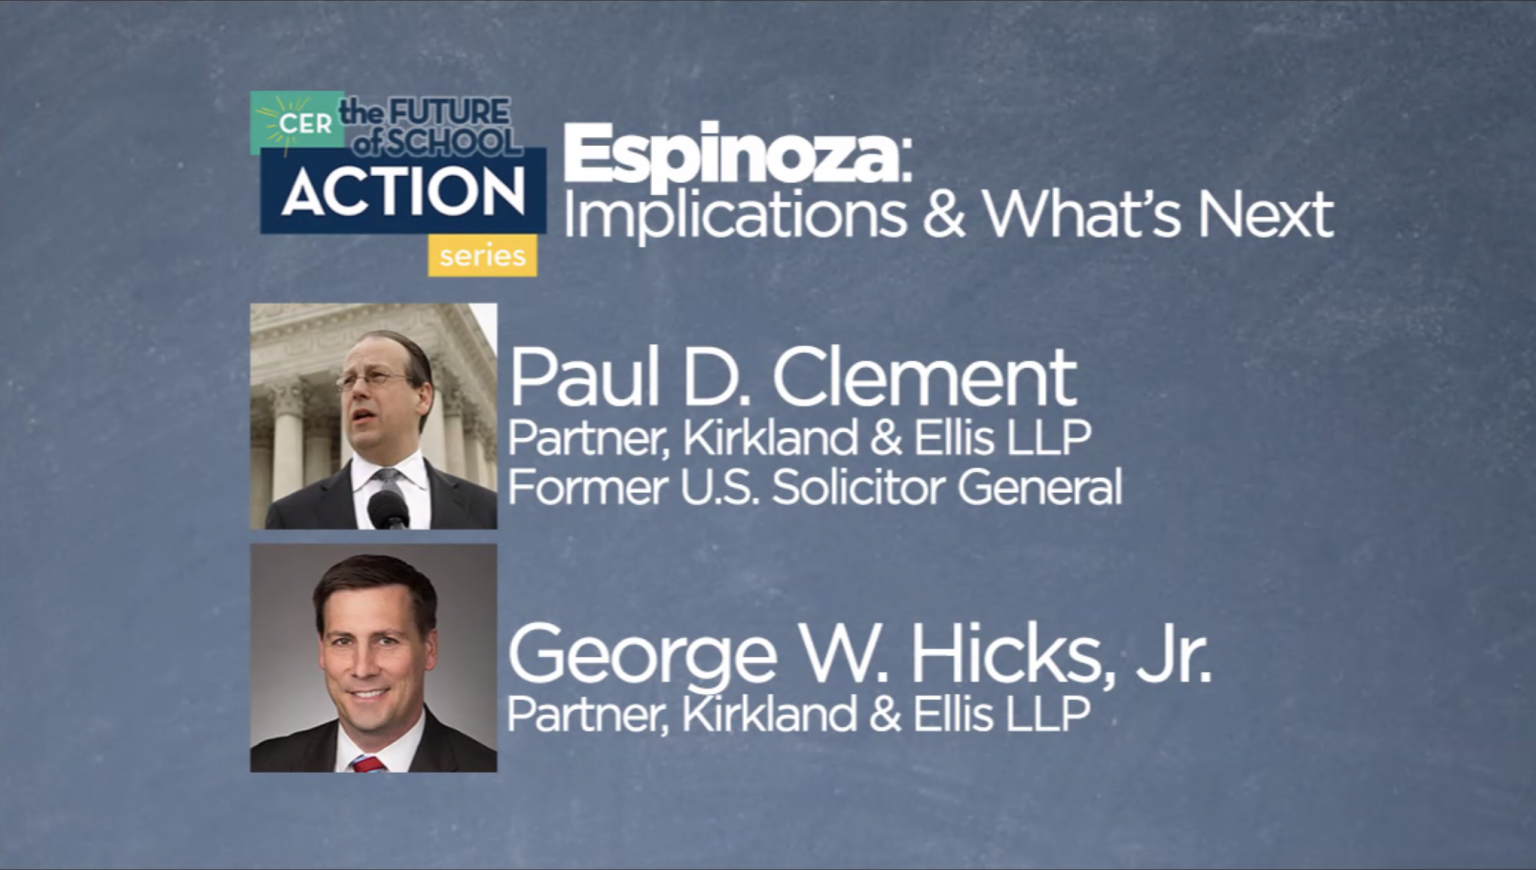 Watch: Espinoza: Implications and What's Next